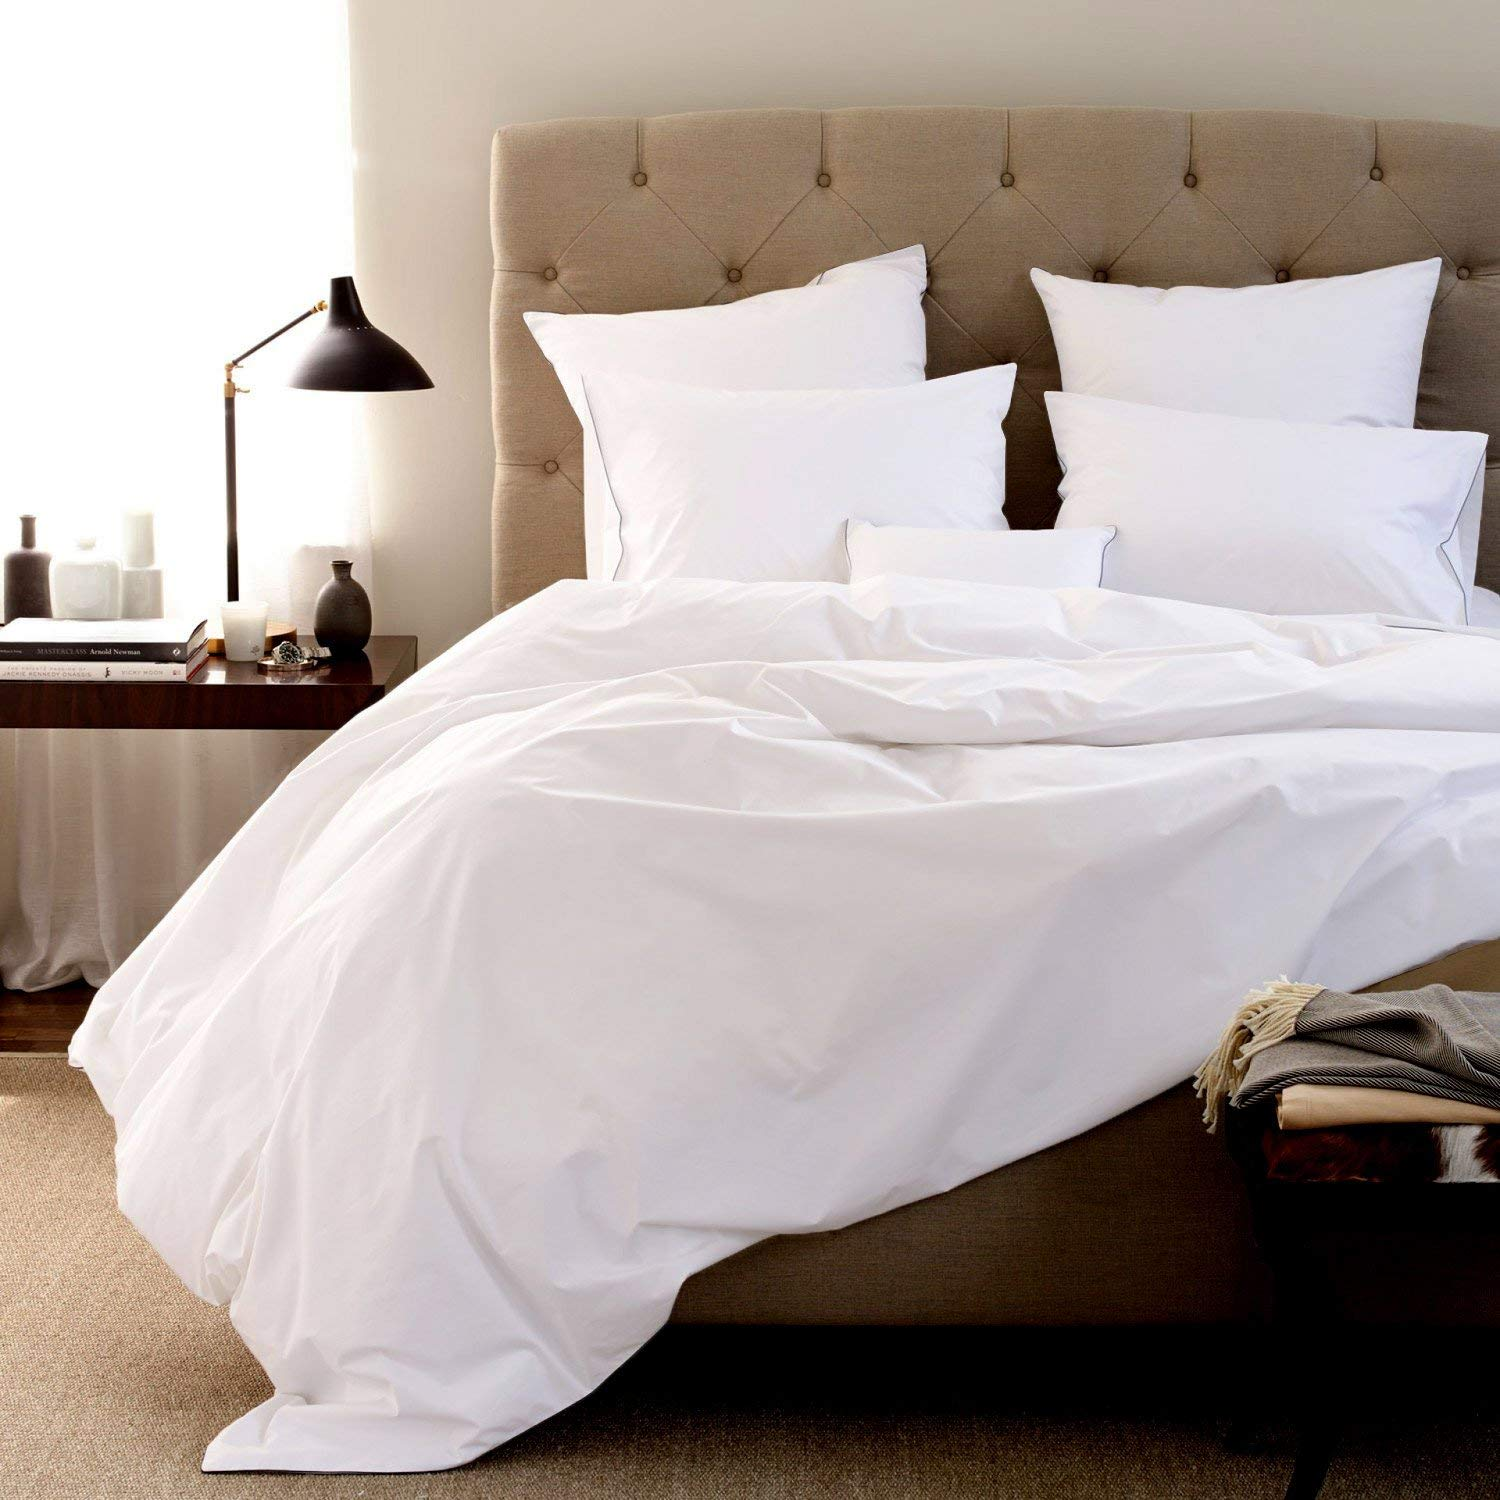 Image of My Cotton Spa 100% Egyptian cotton bed sheets - Best Egyptian Cotton Sheets